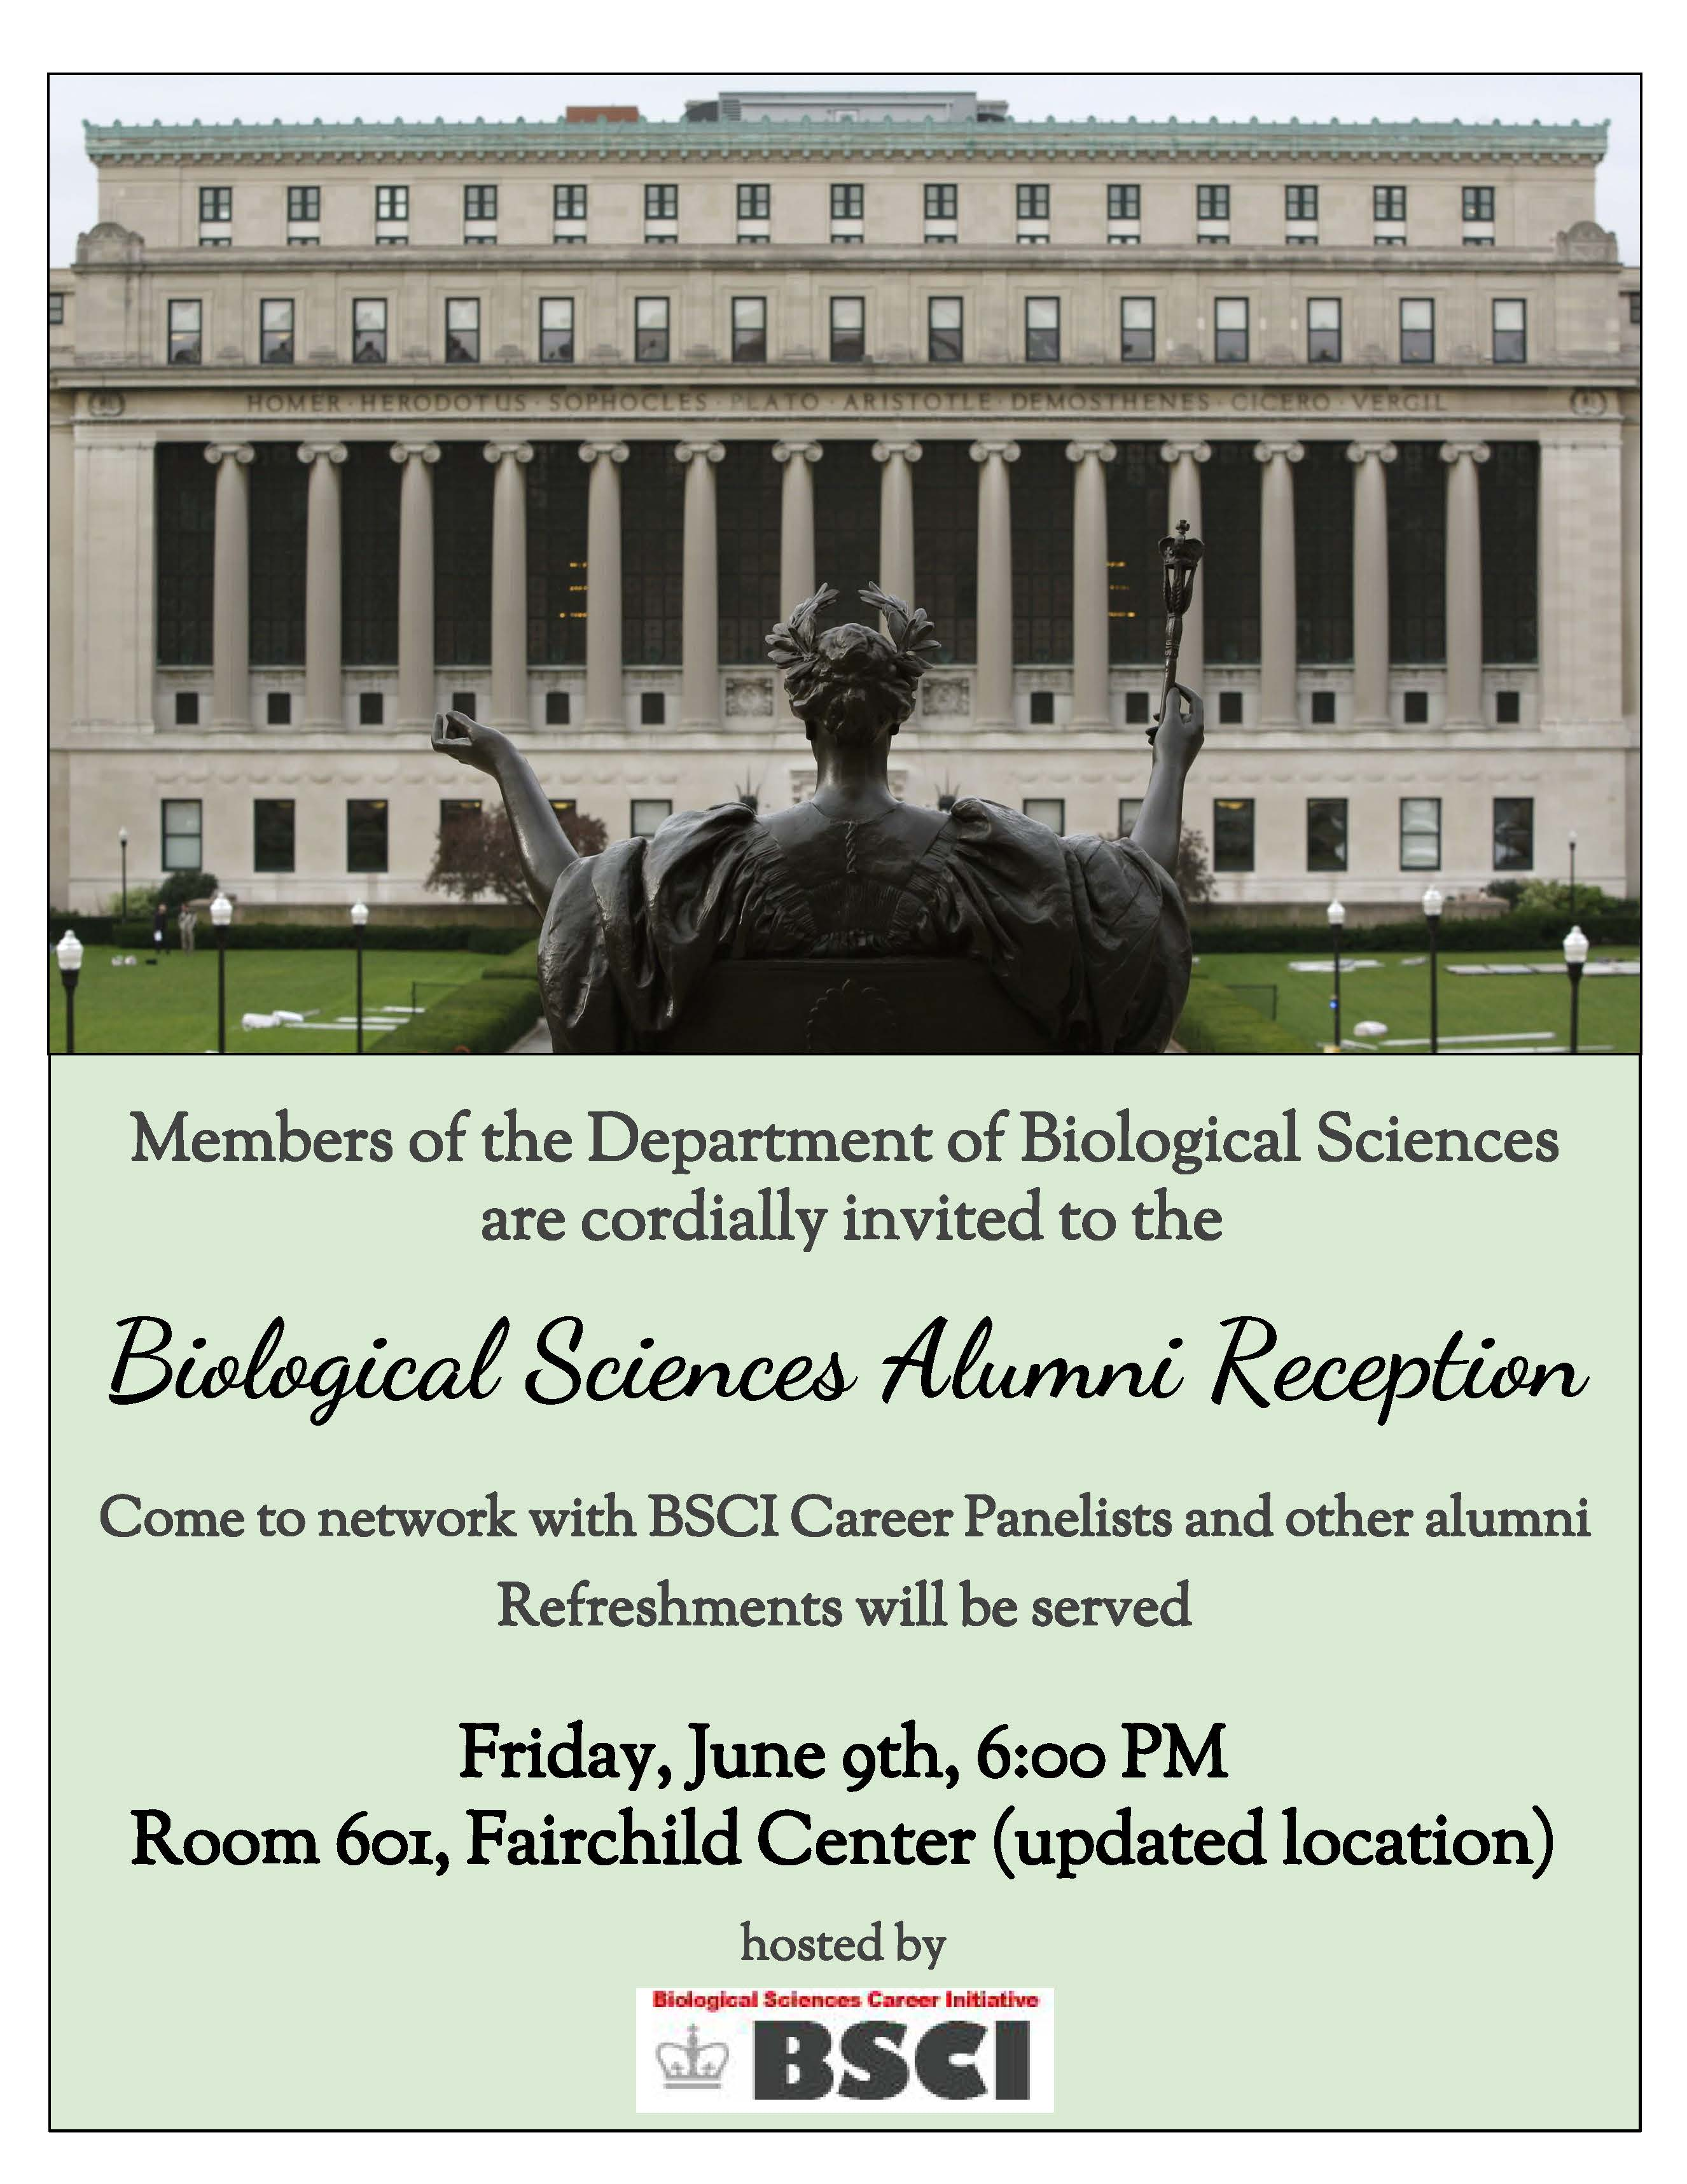 BSCI event poster